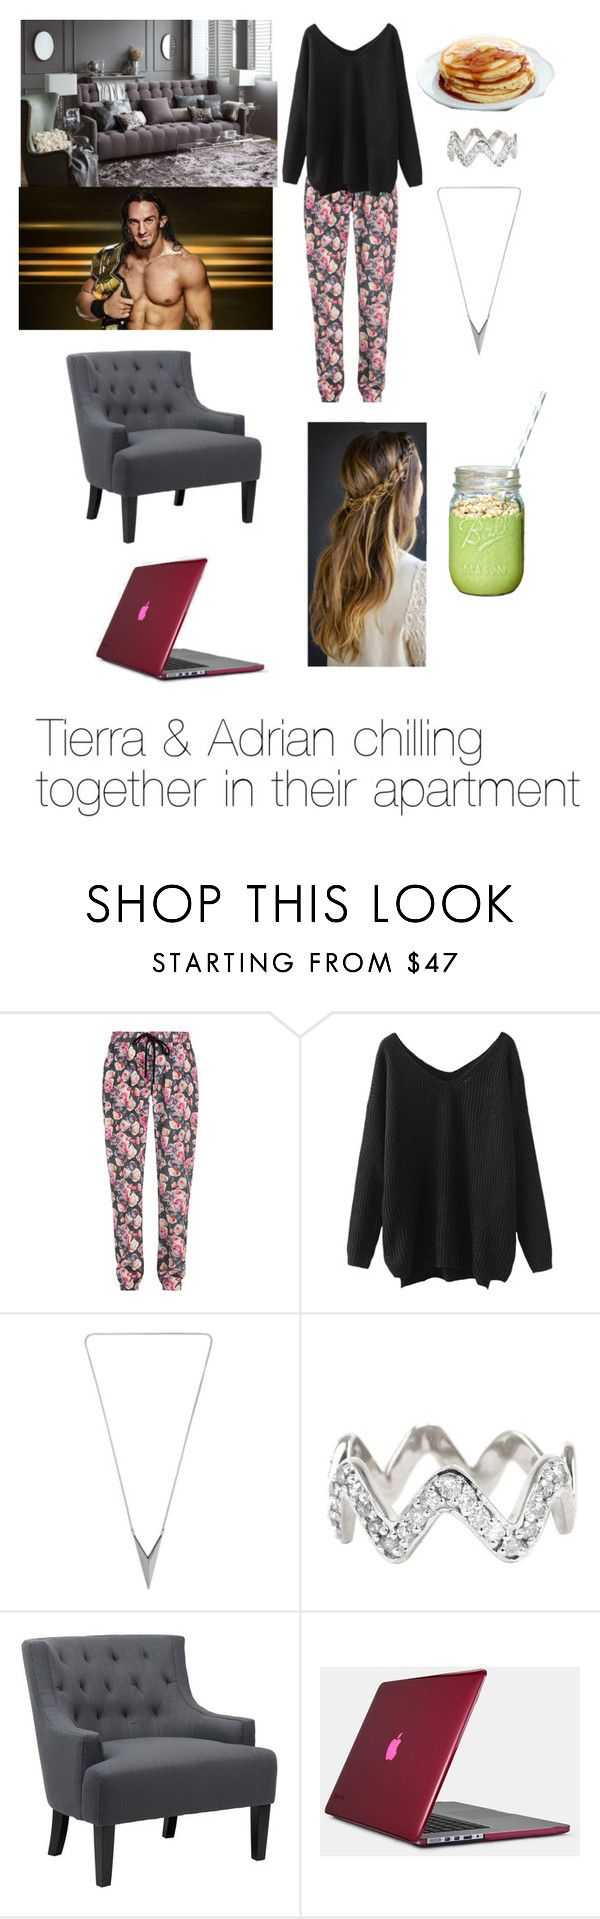 """Tierra & Adrian!"" by a-wwe-love-story ❤ liked on Polyvore featuring Markus Lupfer, ADORNIA, Zara Home, Neville and Speck"